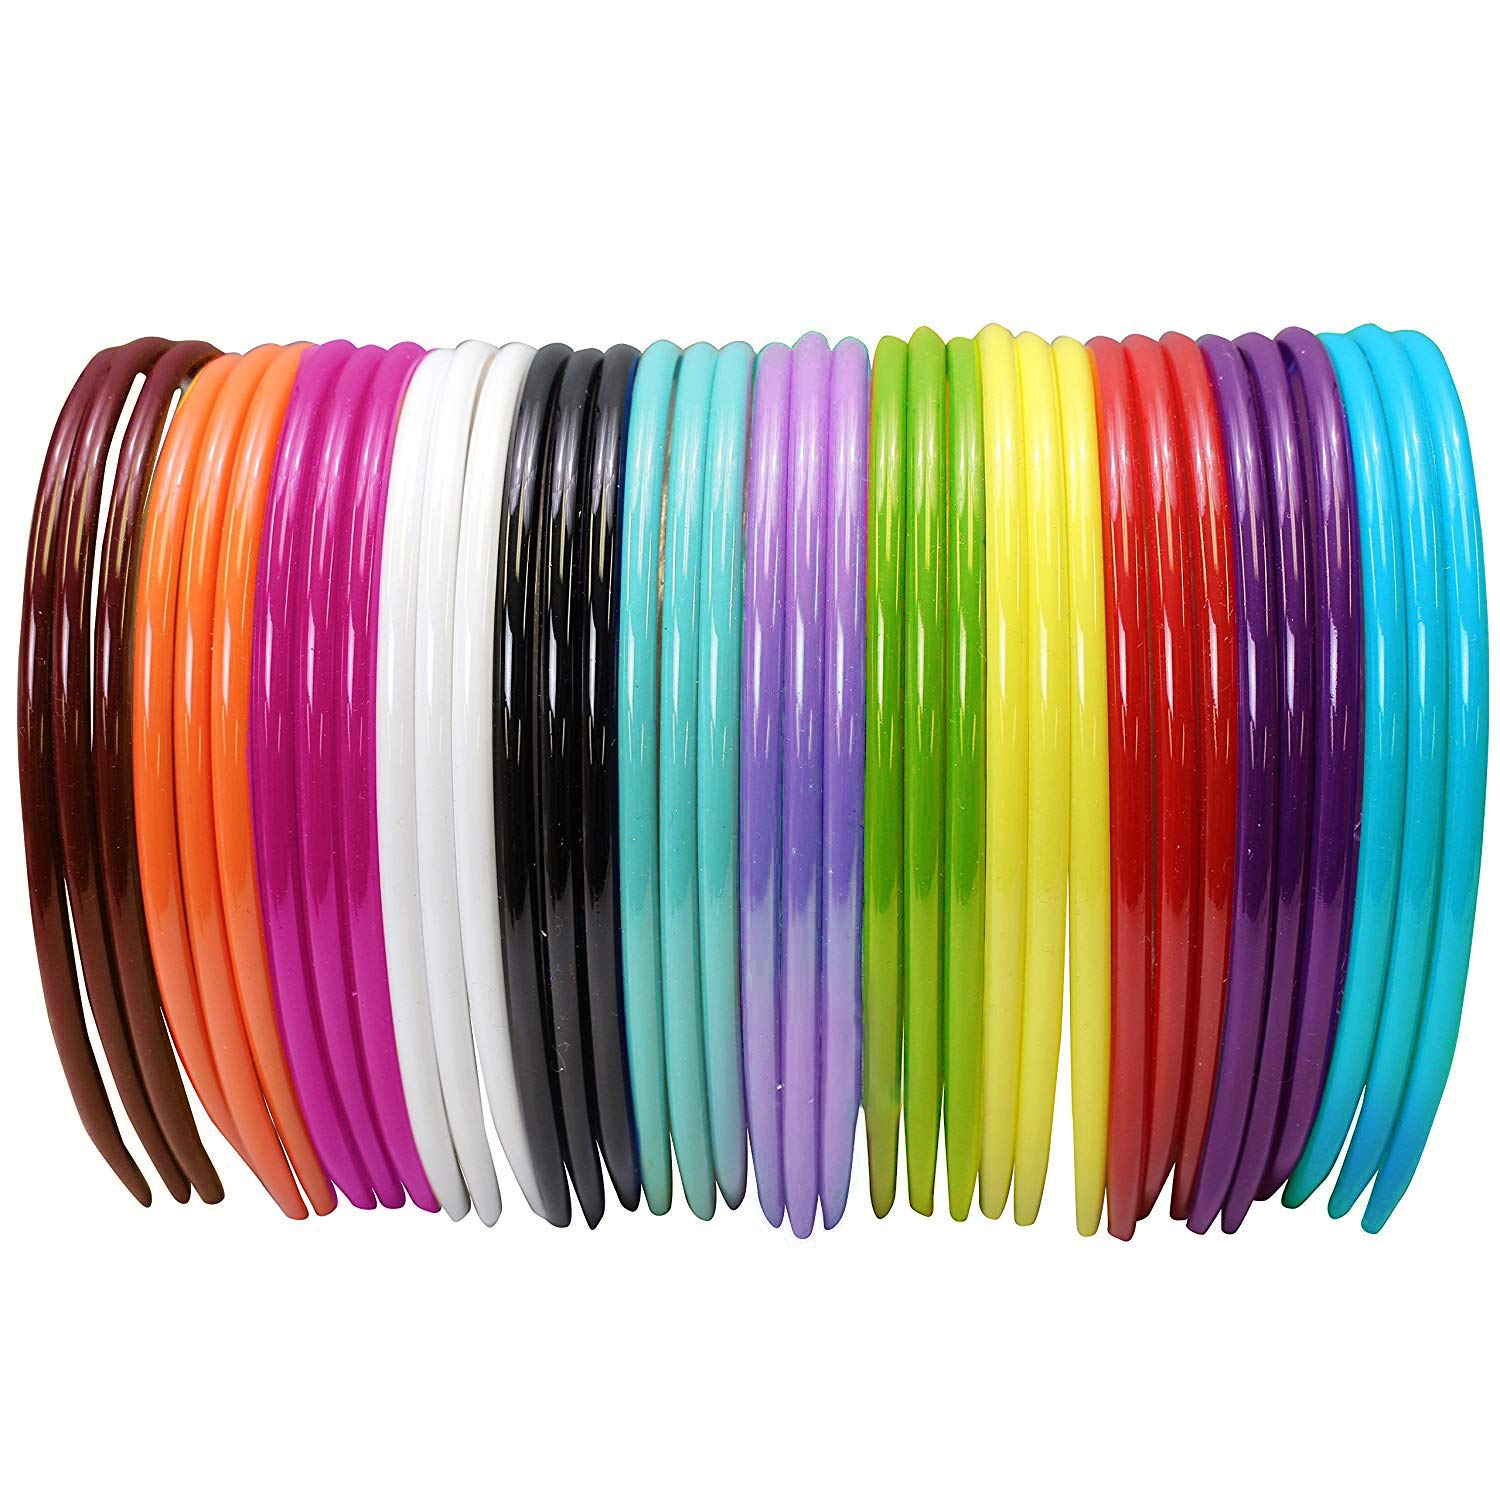 10 Mixed Color Candy Plastic Headband Covered Satin Hair Band 10mm for DIY Craft